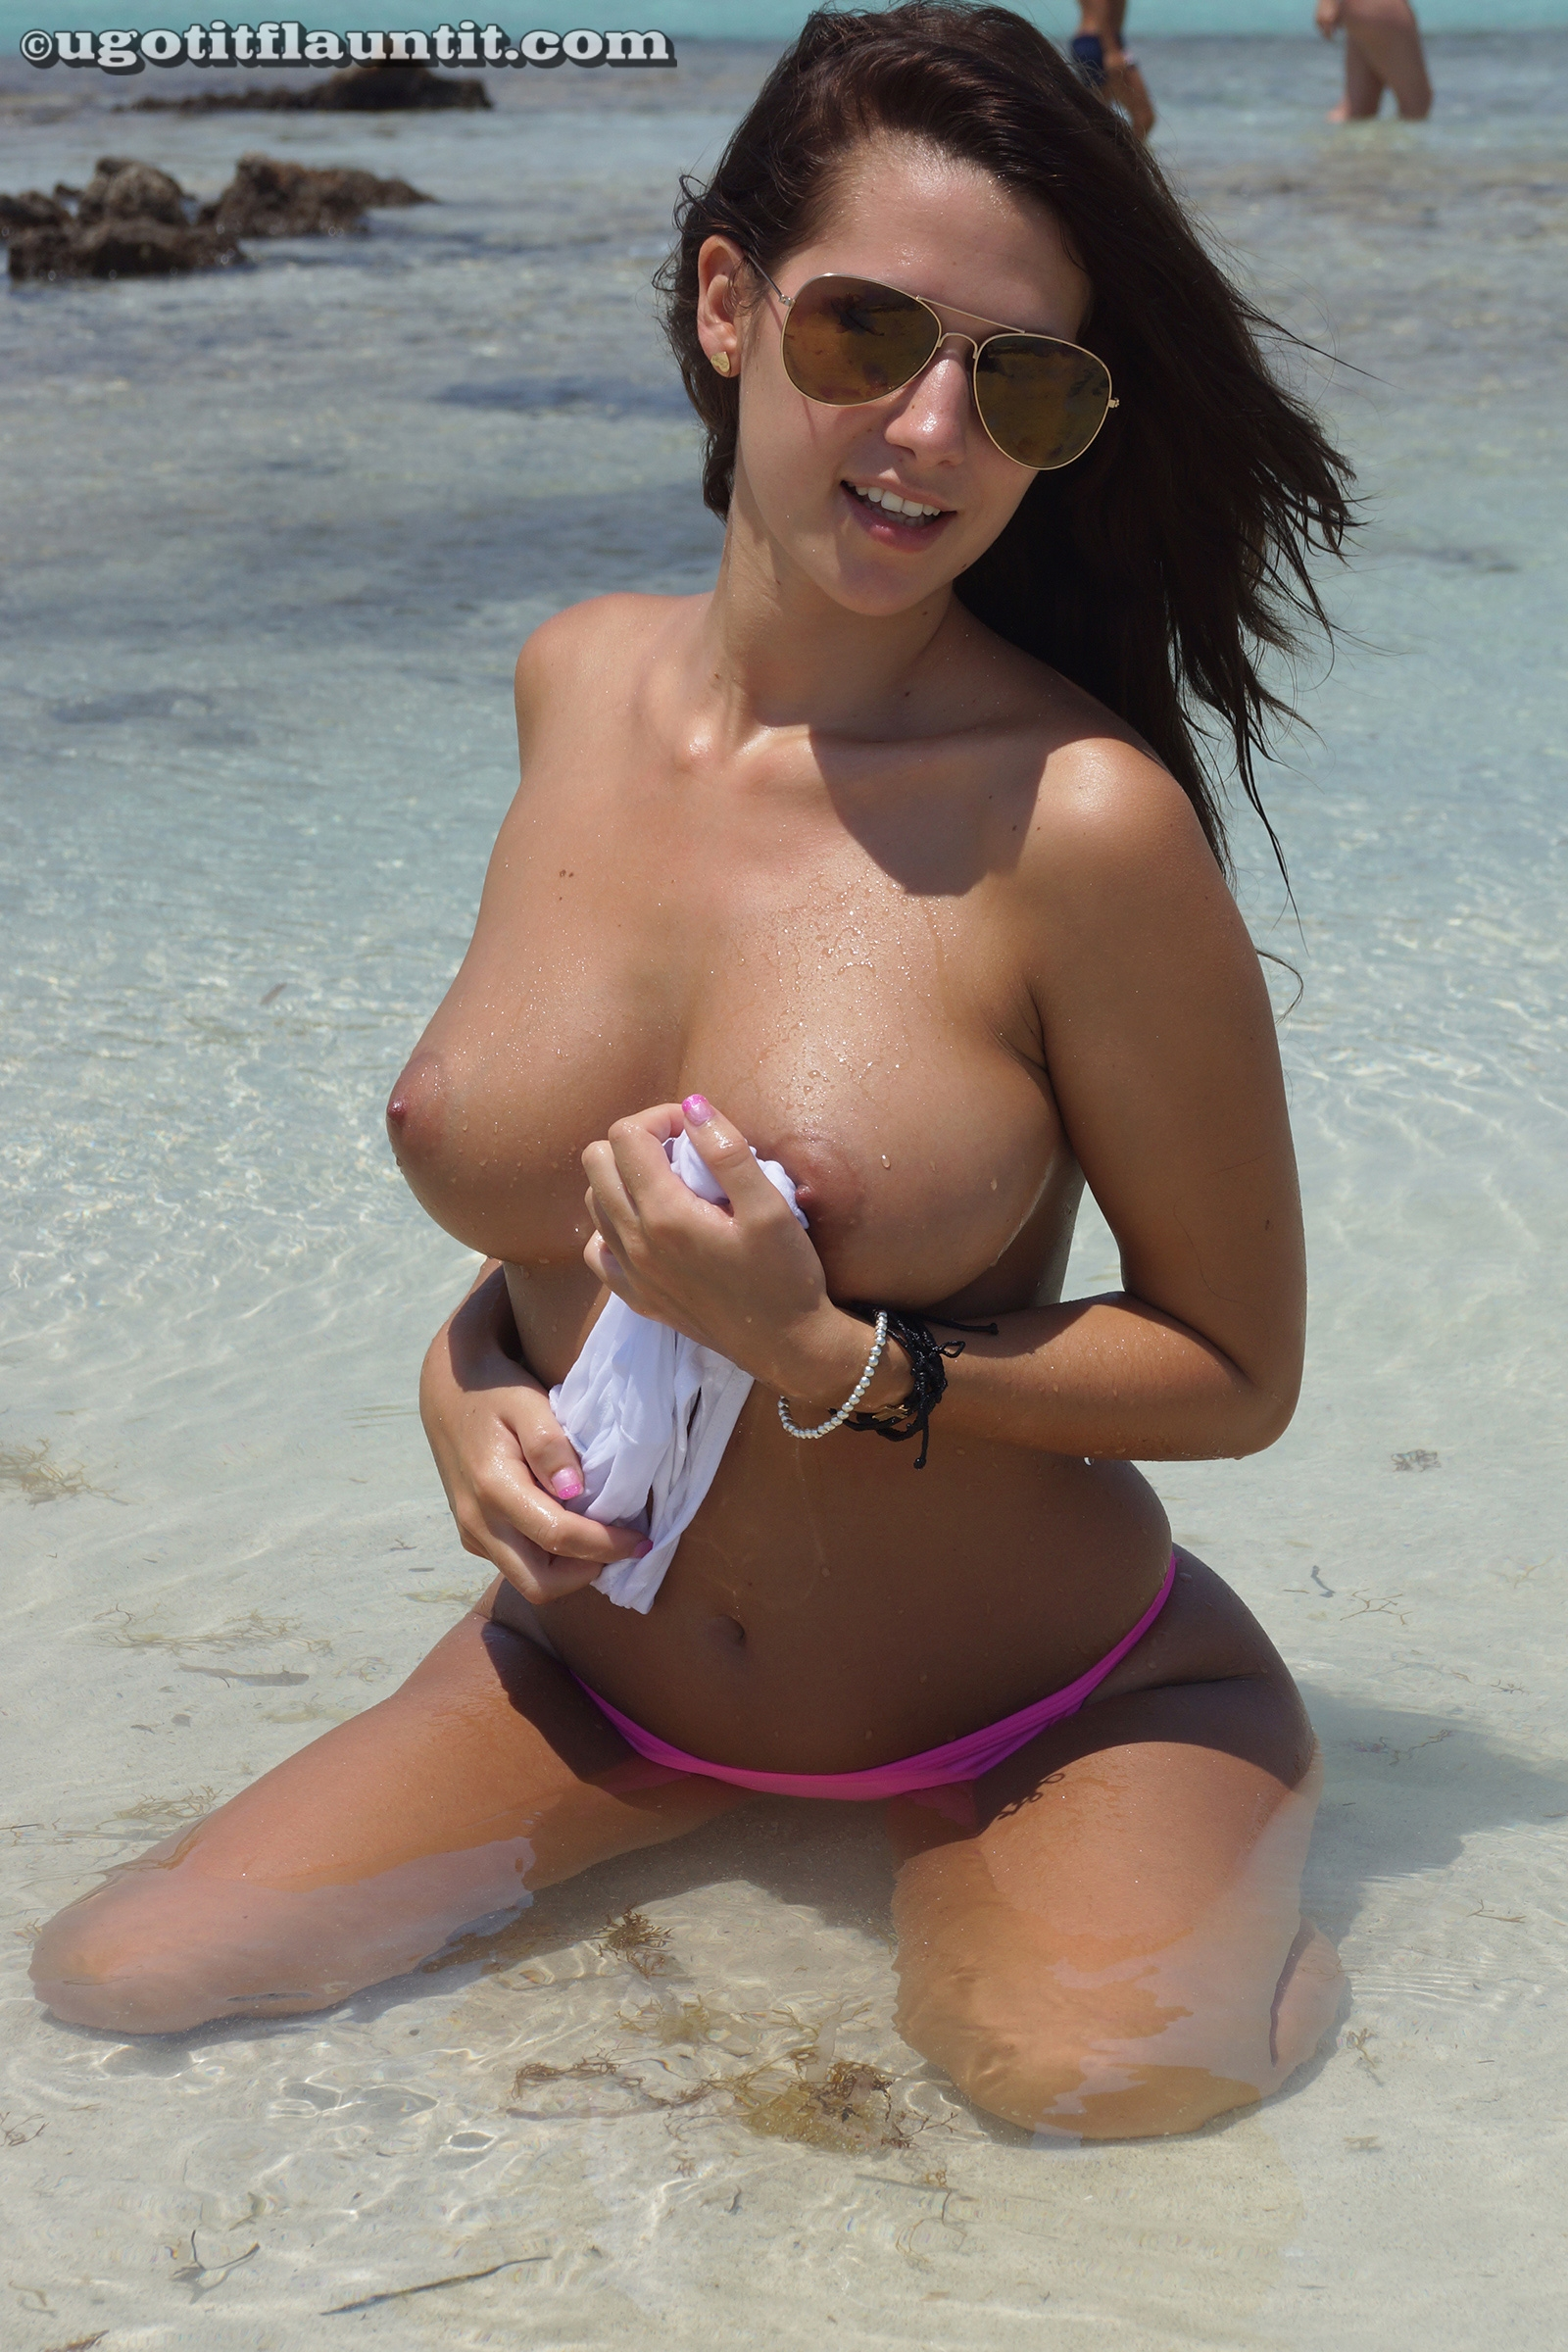 tits parade on the public beach with ugotitflauntit beauty anna #3